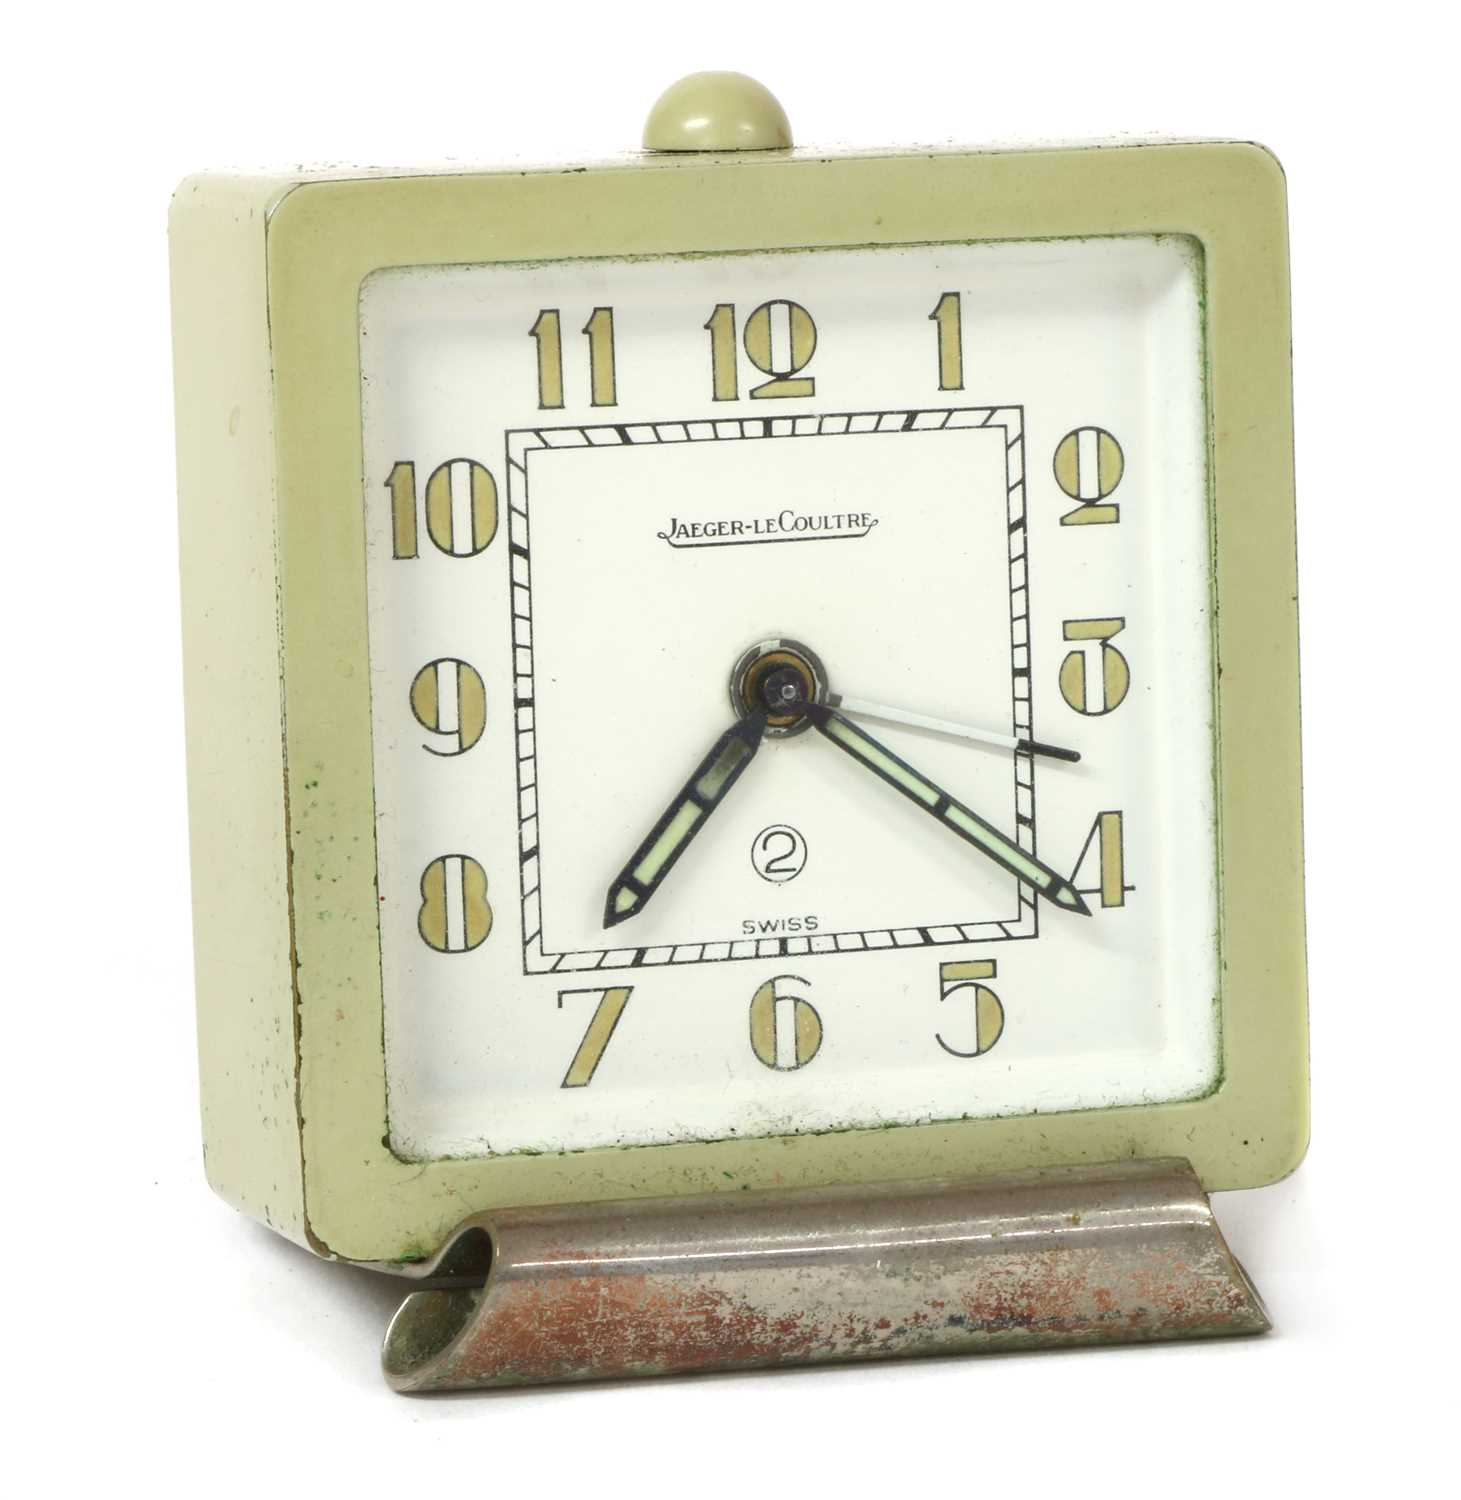 Lot 52 - An Art Deco Jaeger-LeCoultre two day travel alarm clock